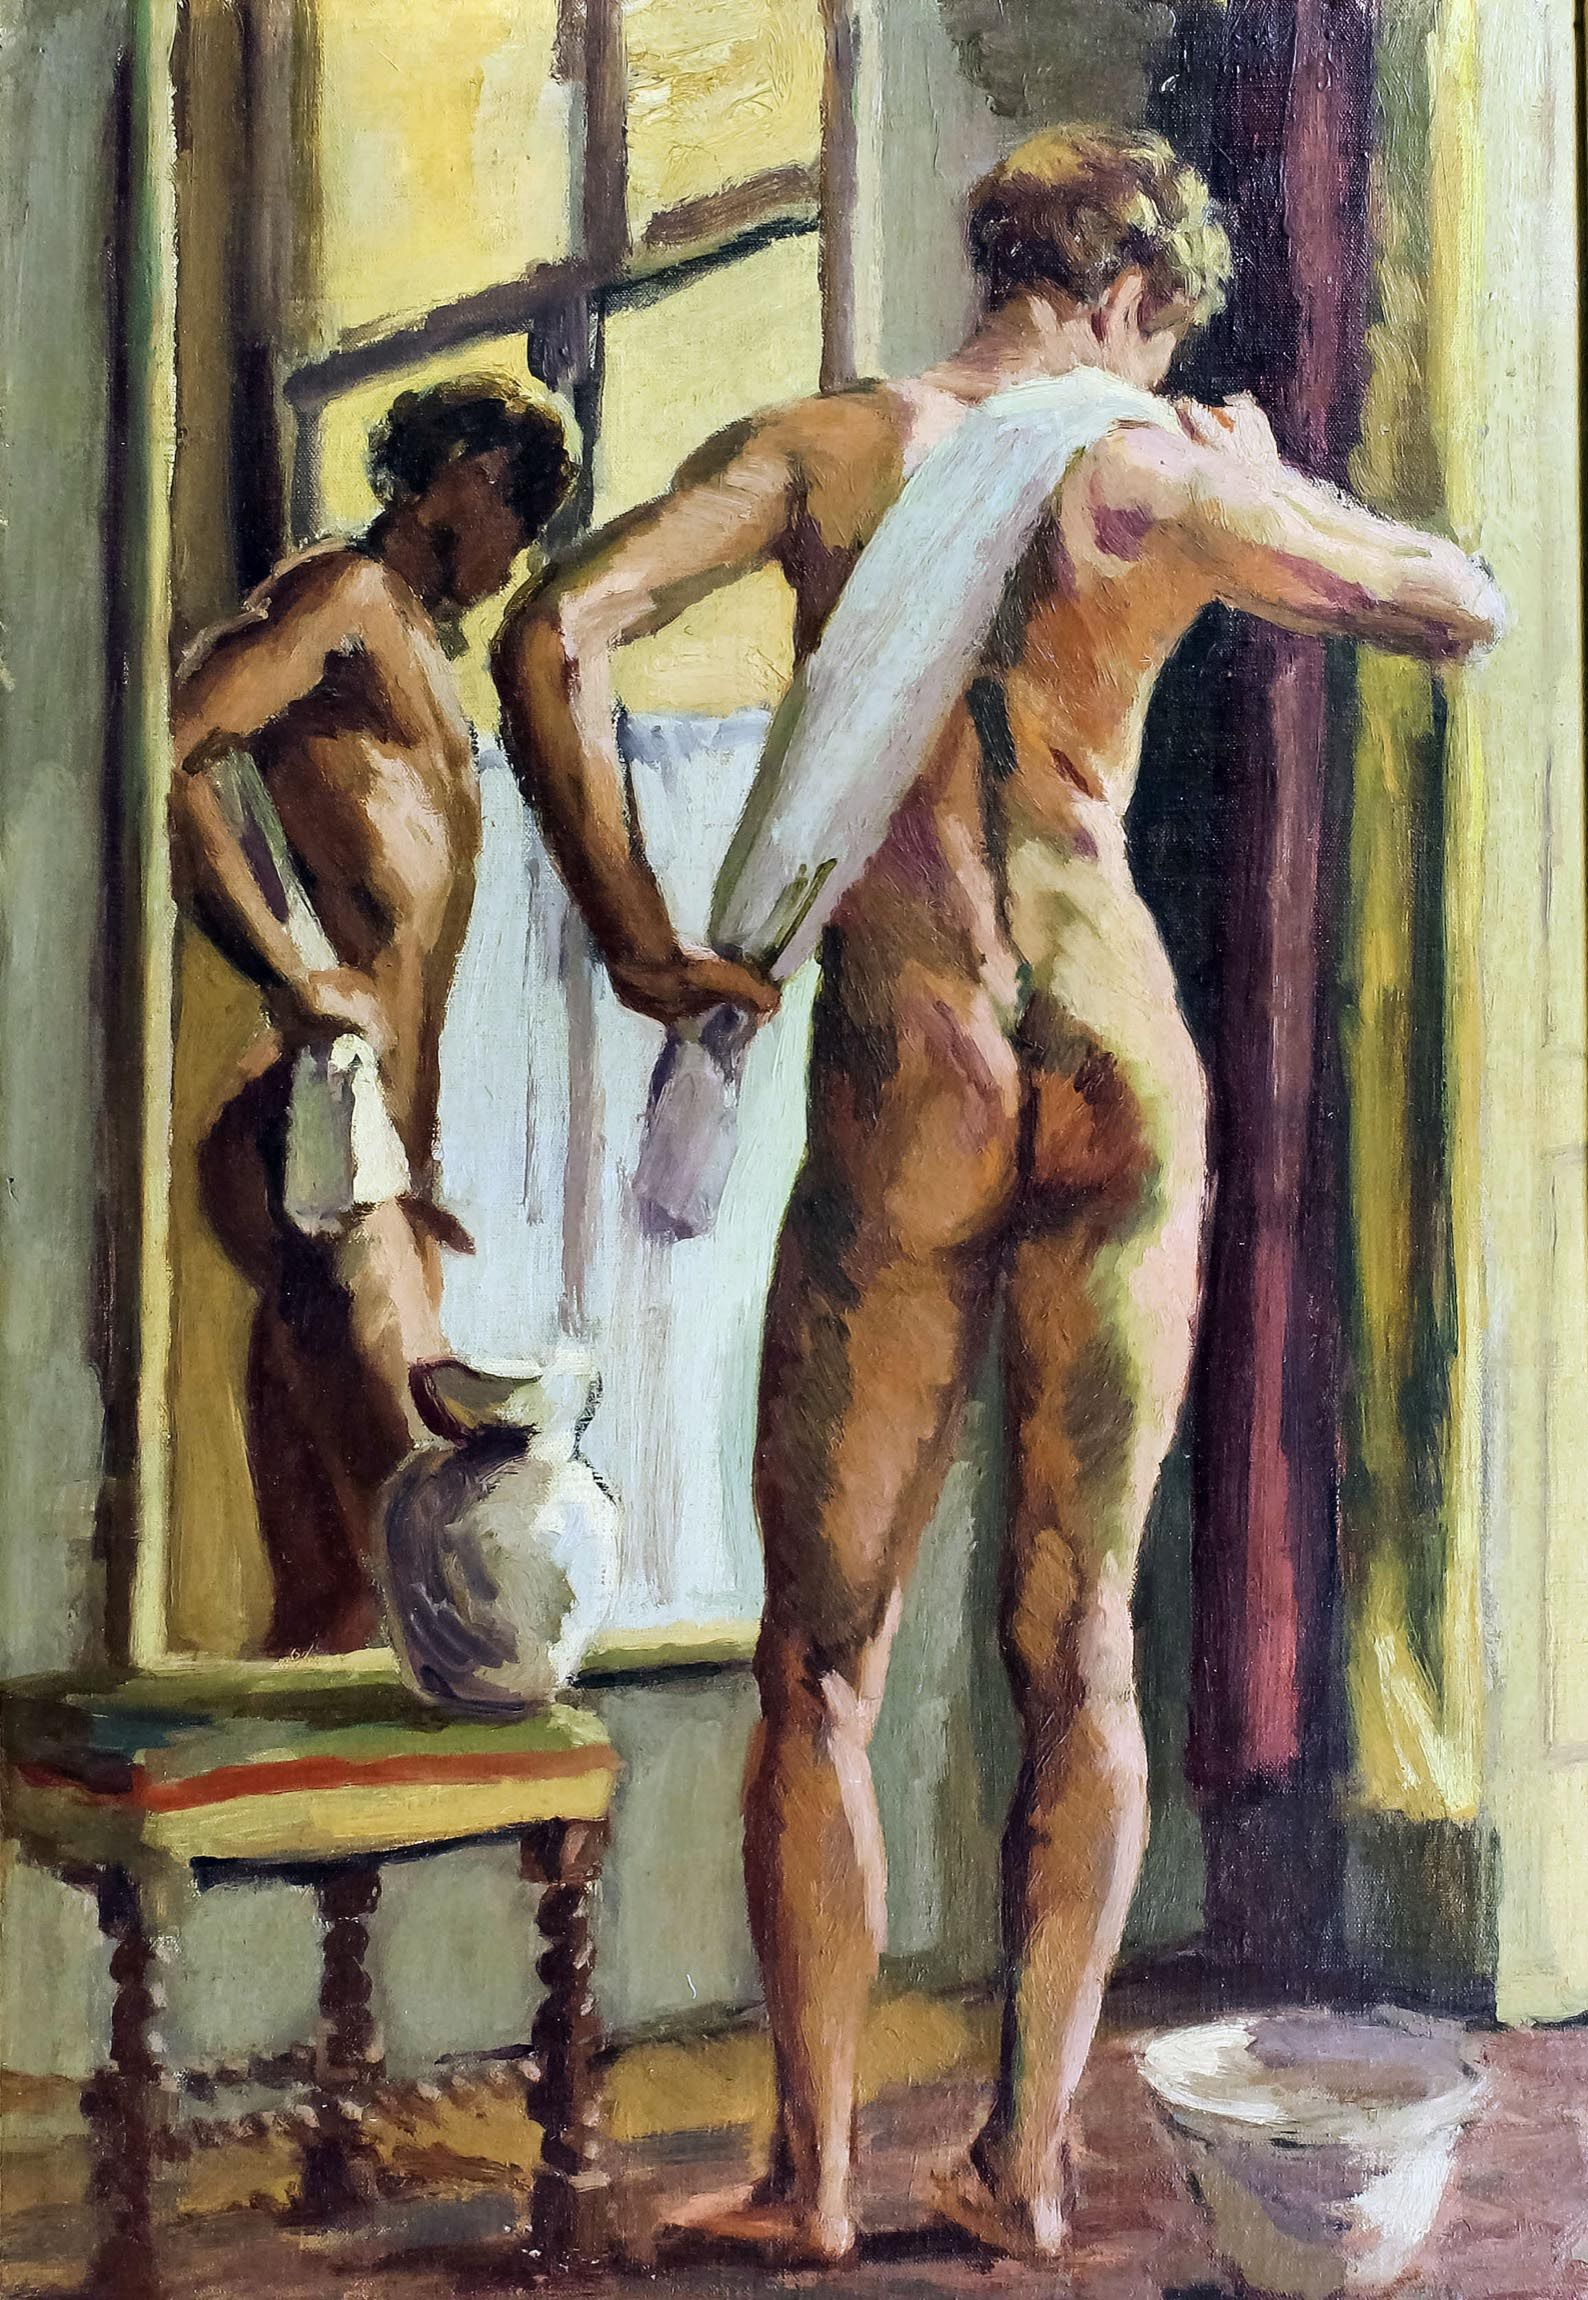 Nude men oil painting — pic 6